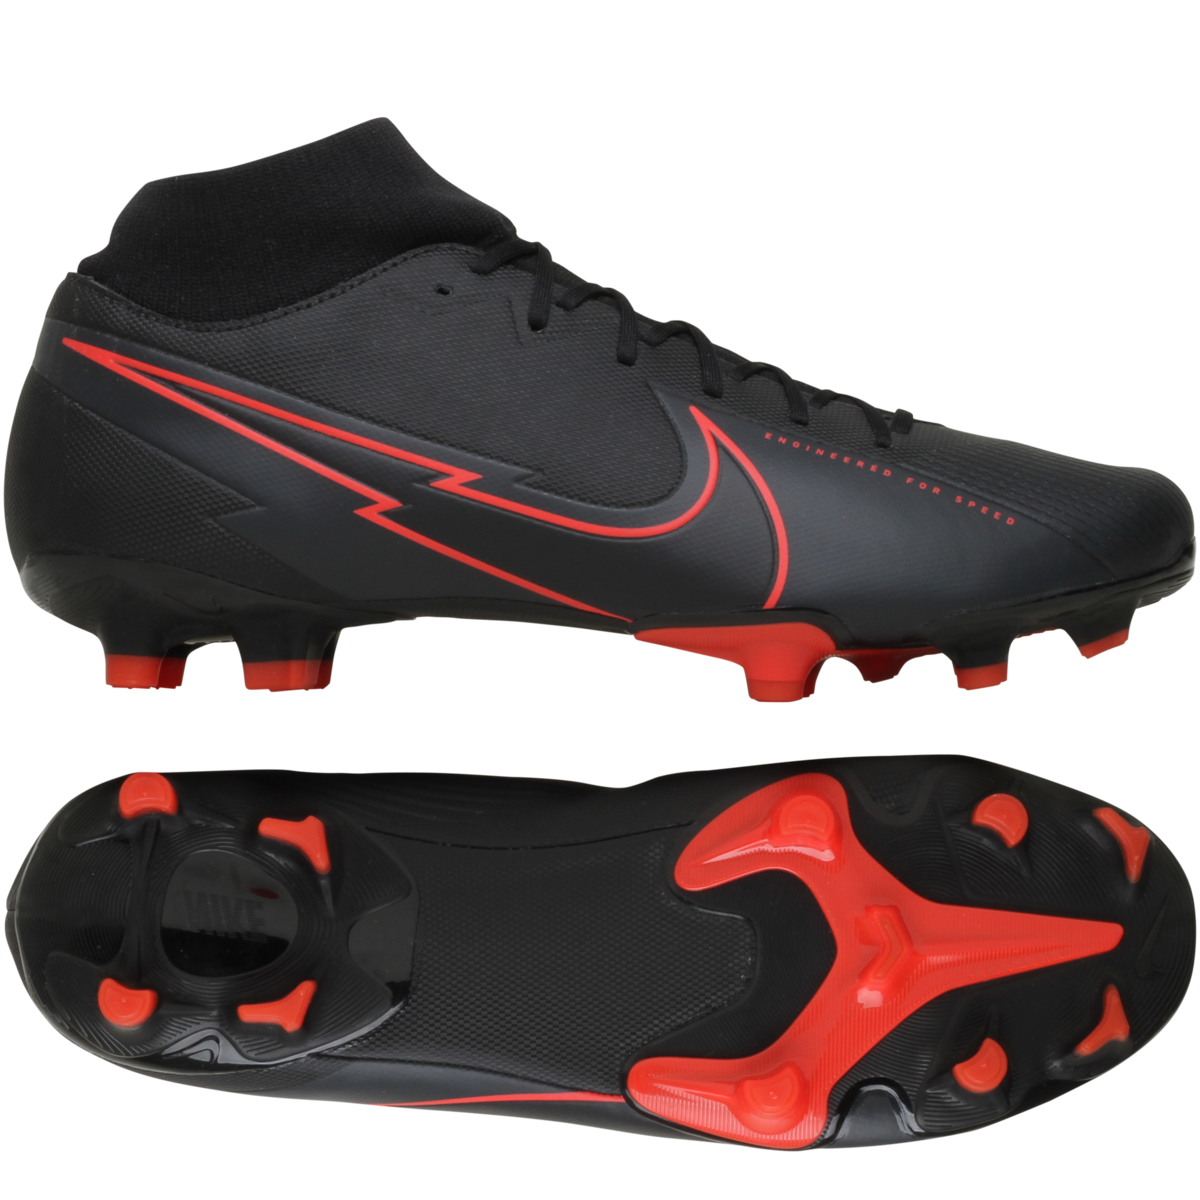 Nike - Mercurial Superfly 7 Academy FG/MG Black X Chile Red - Sort